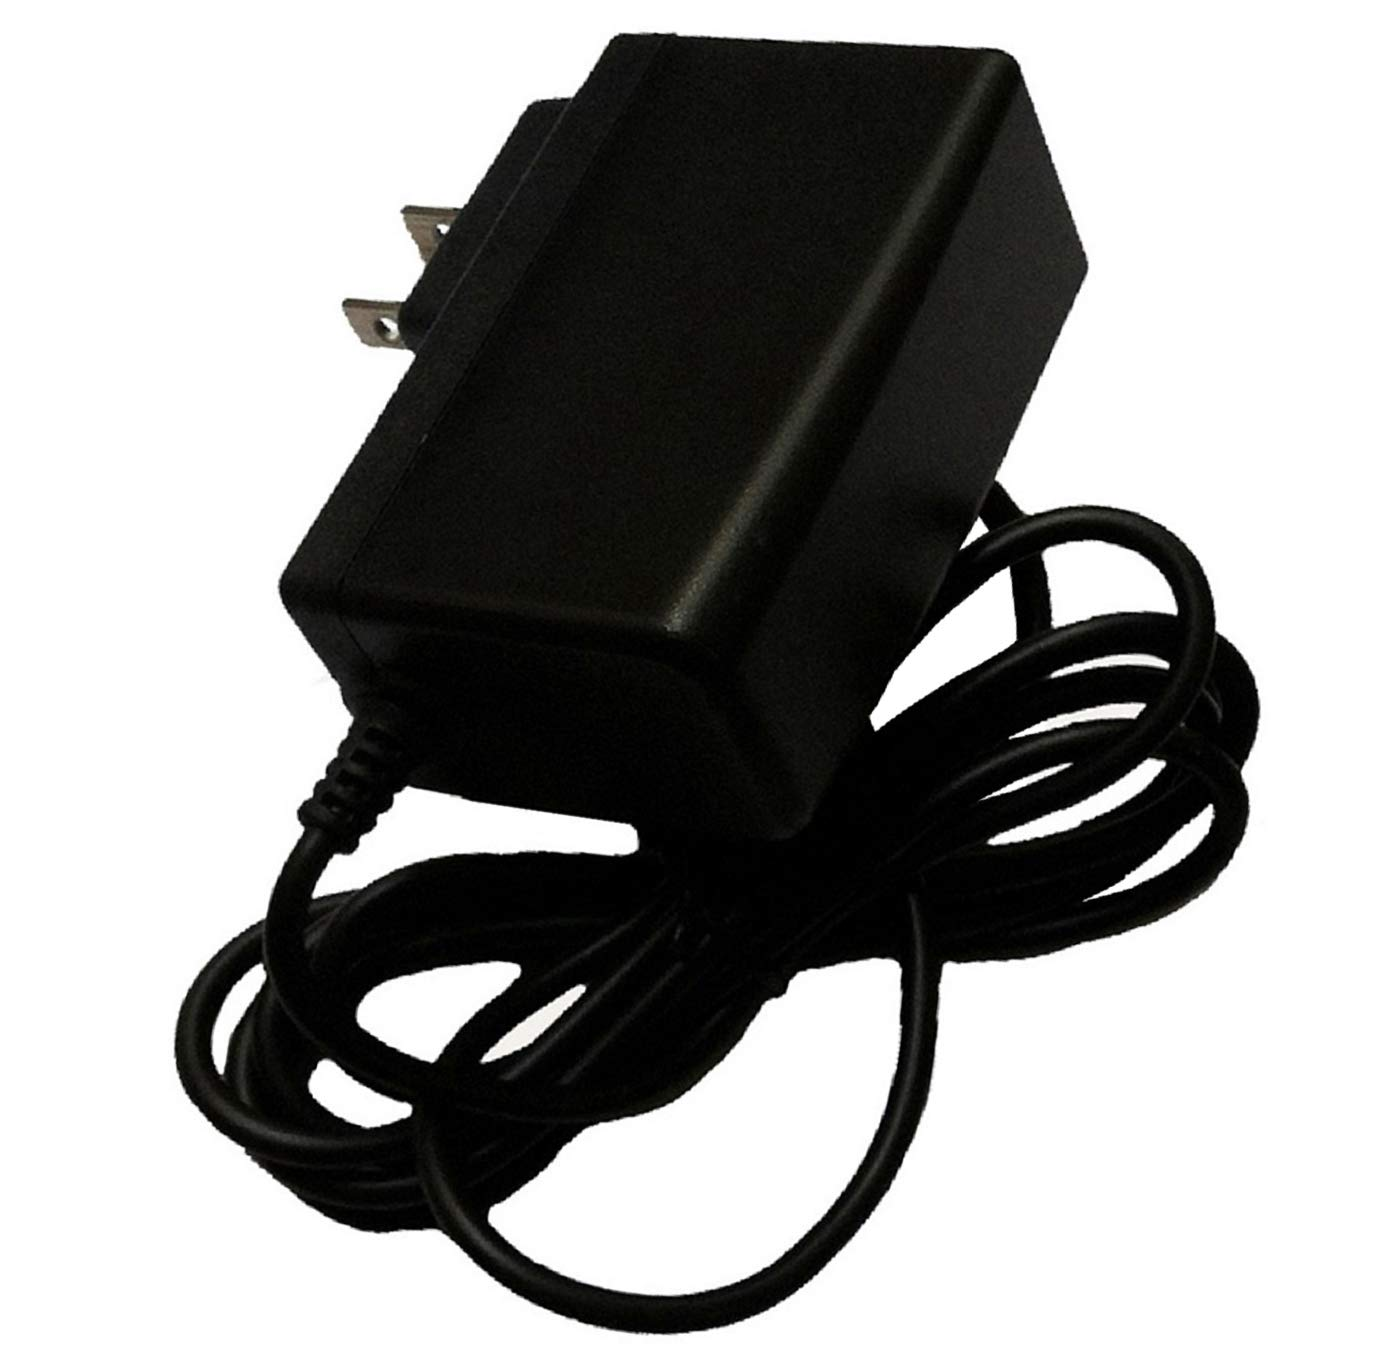 UpBright NEW AC//DC Adapter Replacement For EnterTech Enter Tech Magic Sing ET-19KV ET19KV ET19K-BT ET19KBT Karaoke Microphone 2010 Edition Power Supply Cord Cable PS Wall Home Battery Charger PSU